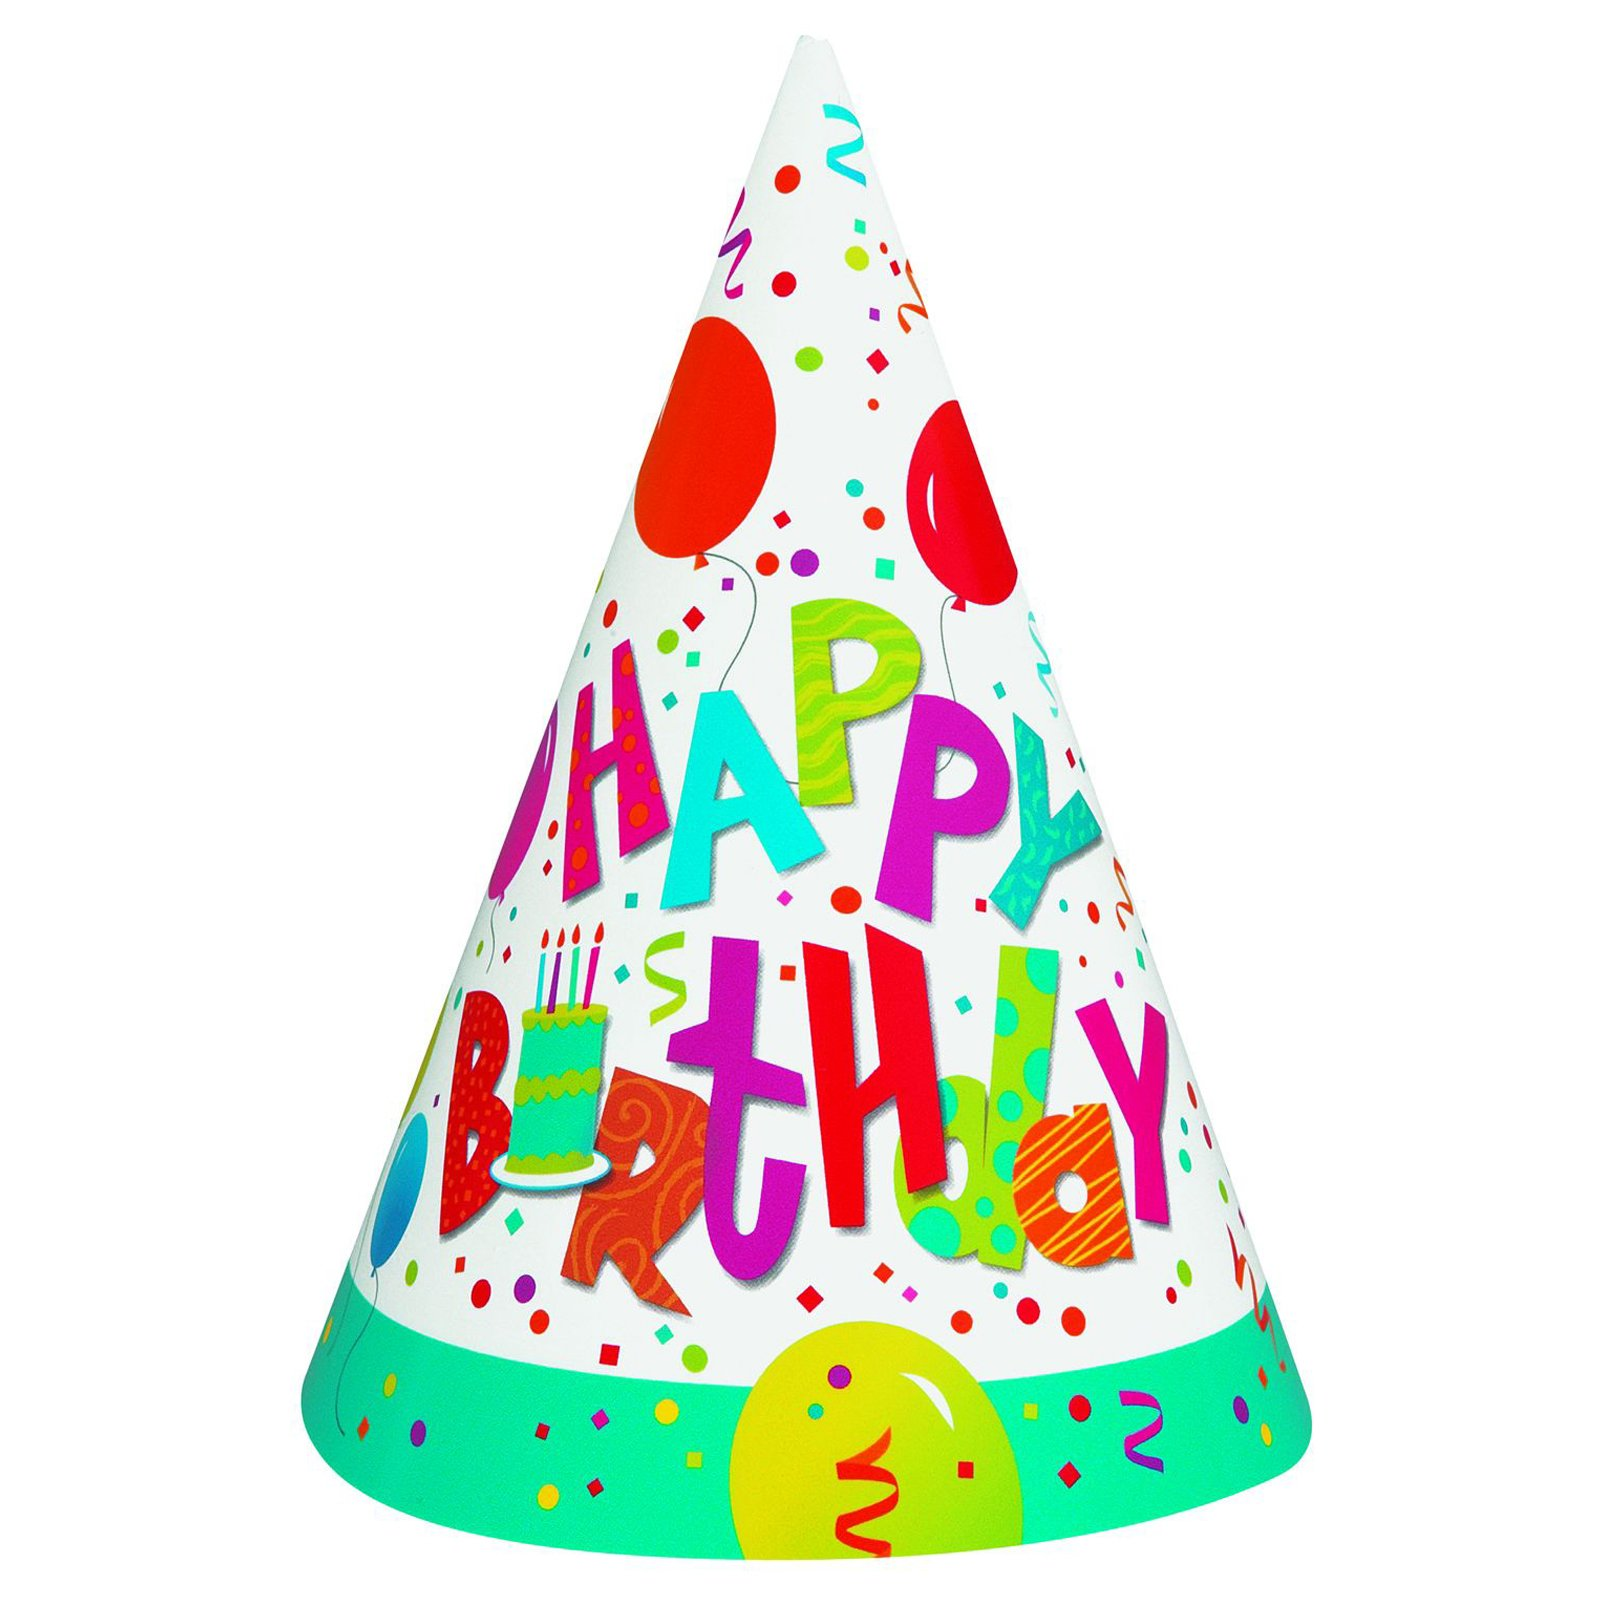 Birthday Hat Transparent - Birthday hat transparent background free clipart 2 - ClipartBarn